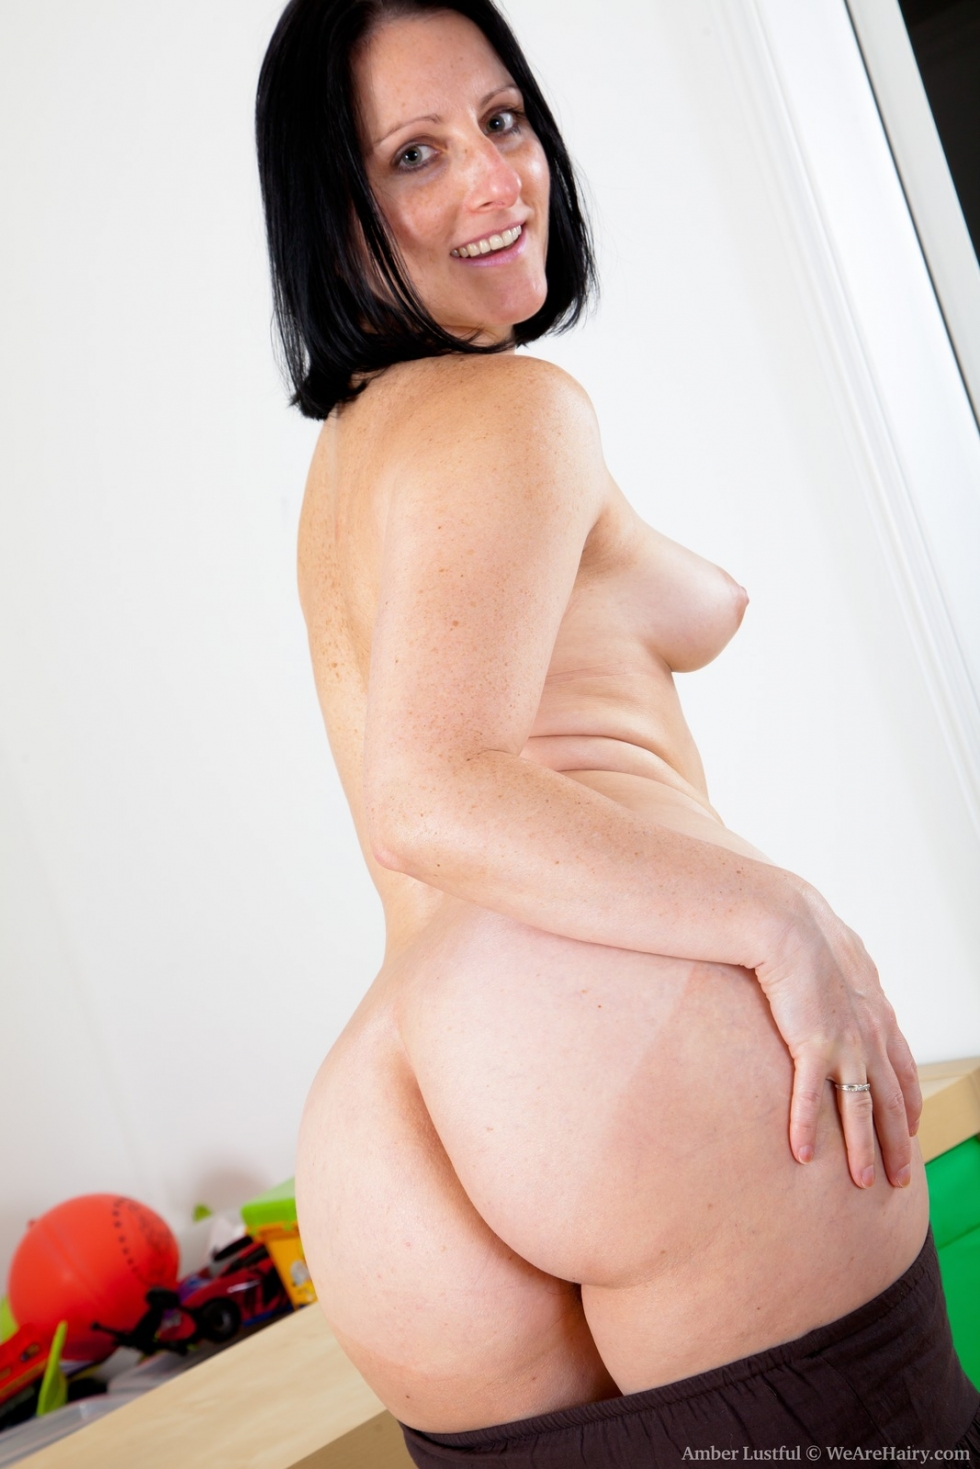 Amber lustful hairy pussy